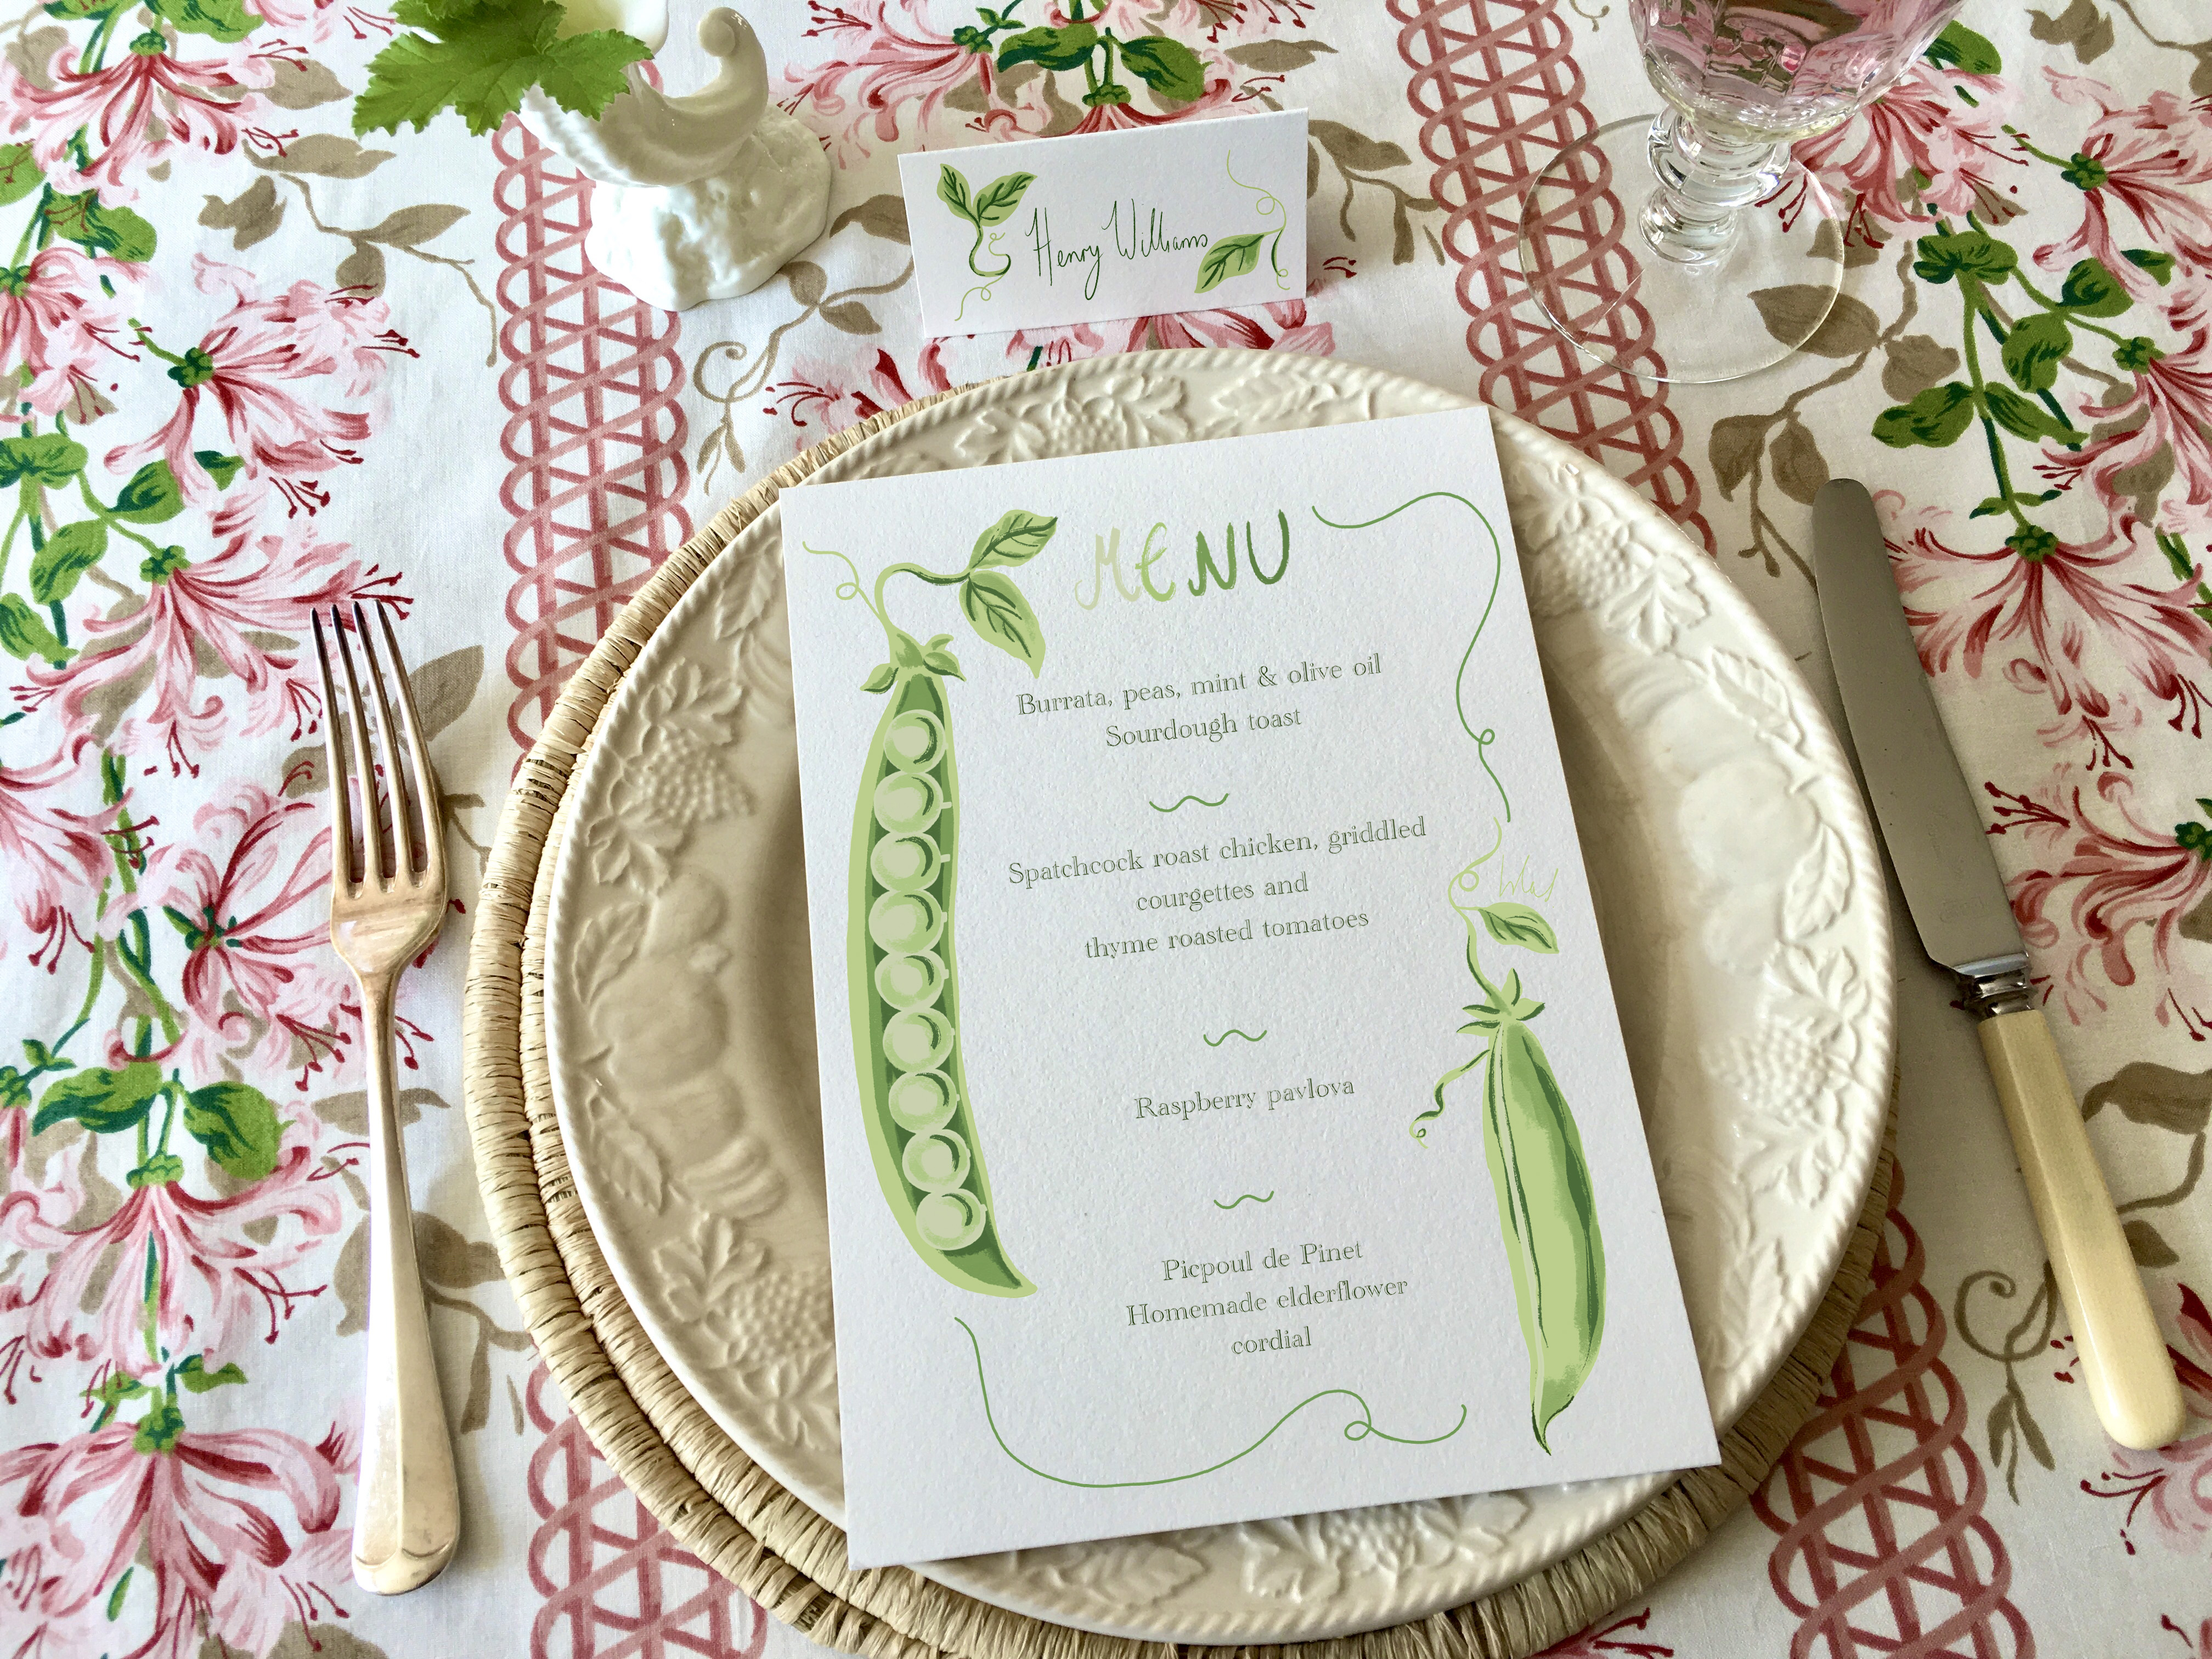 Two peas in a pod menu and place card design